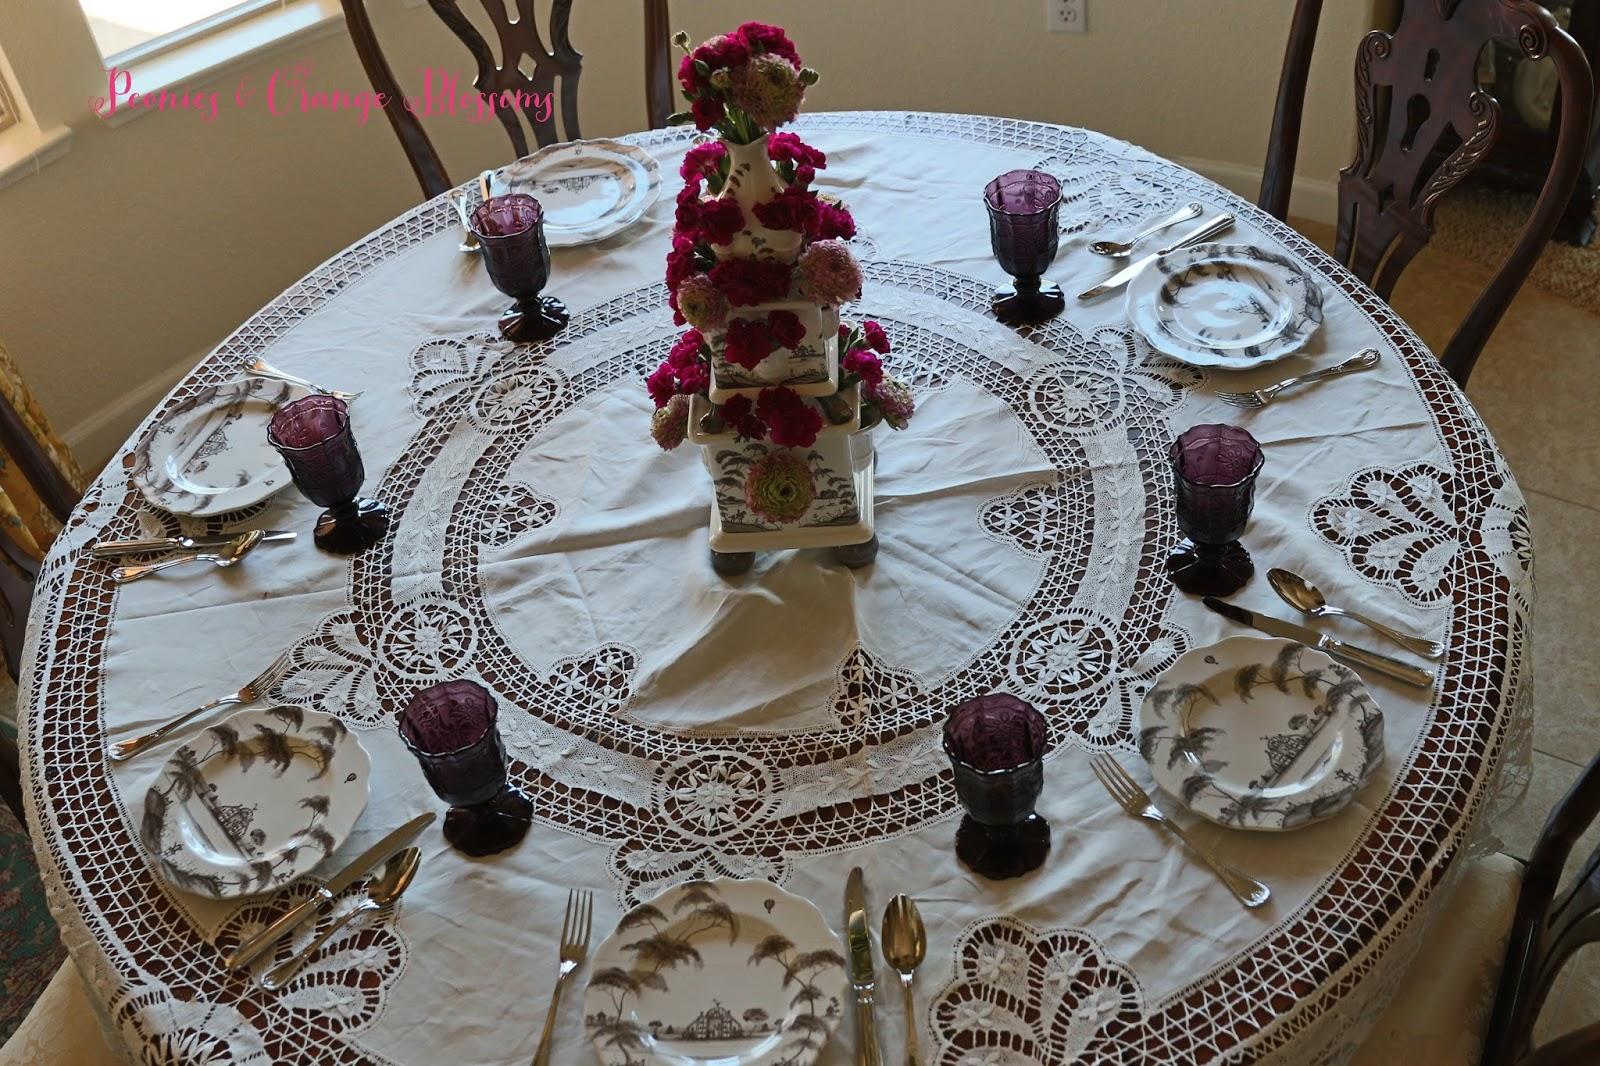 Spring Table with Juliska Tulipiere, purple carnations and ranunculus and an antique lace tablecloth